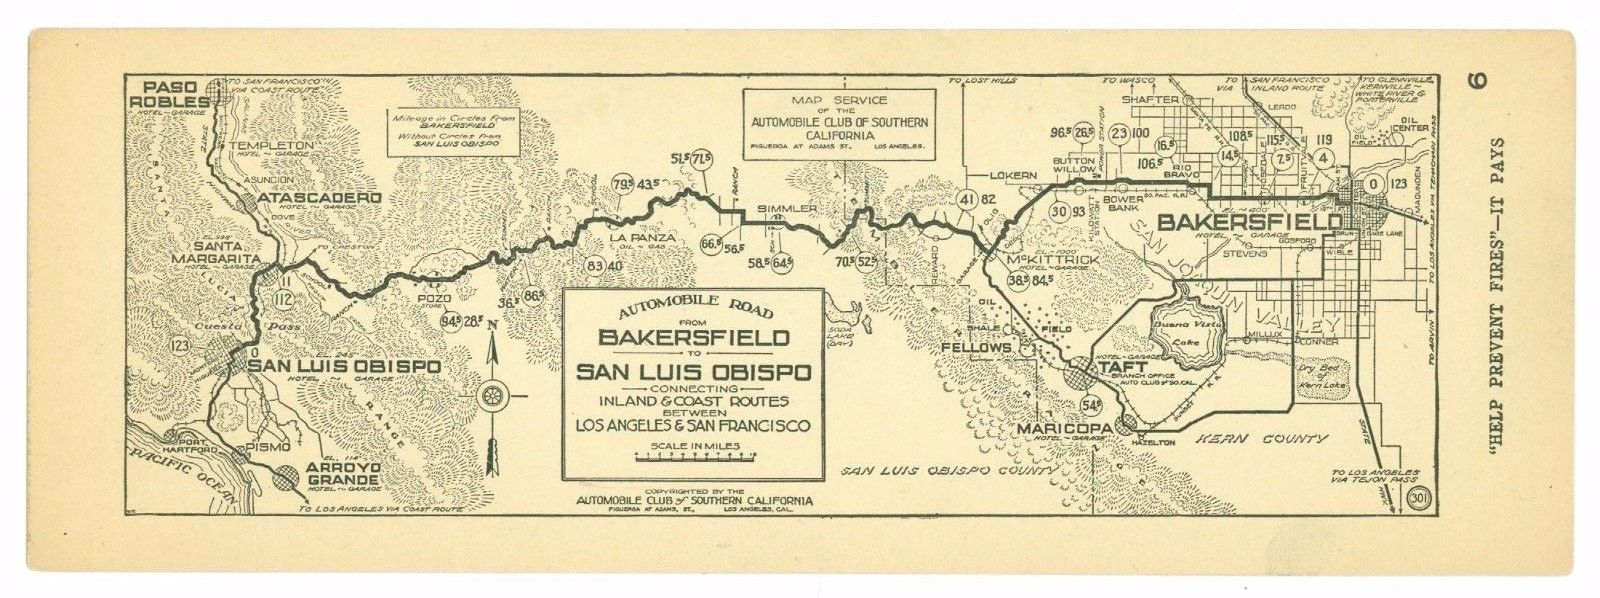 1920's Bakersfield to San Luis Obispo AAA Automobile Club of Southern Calif Map